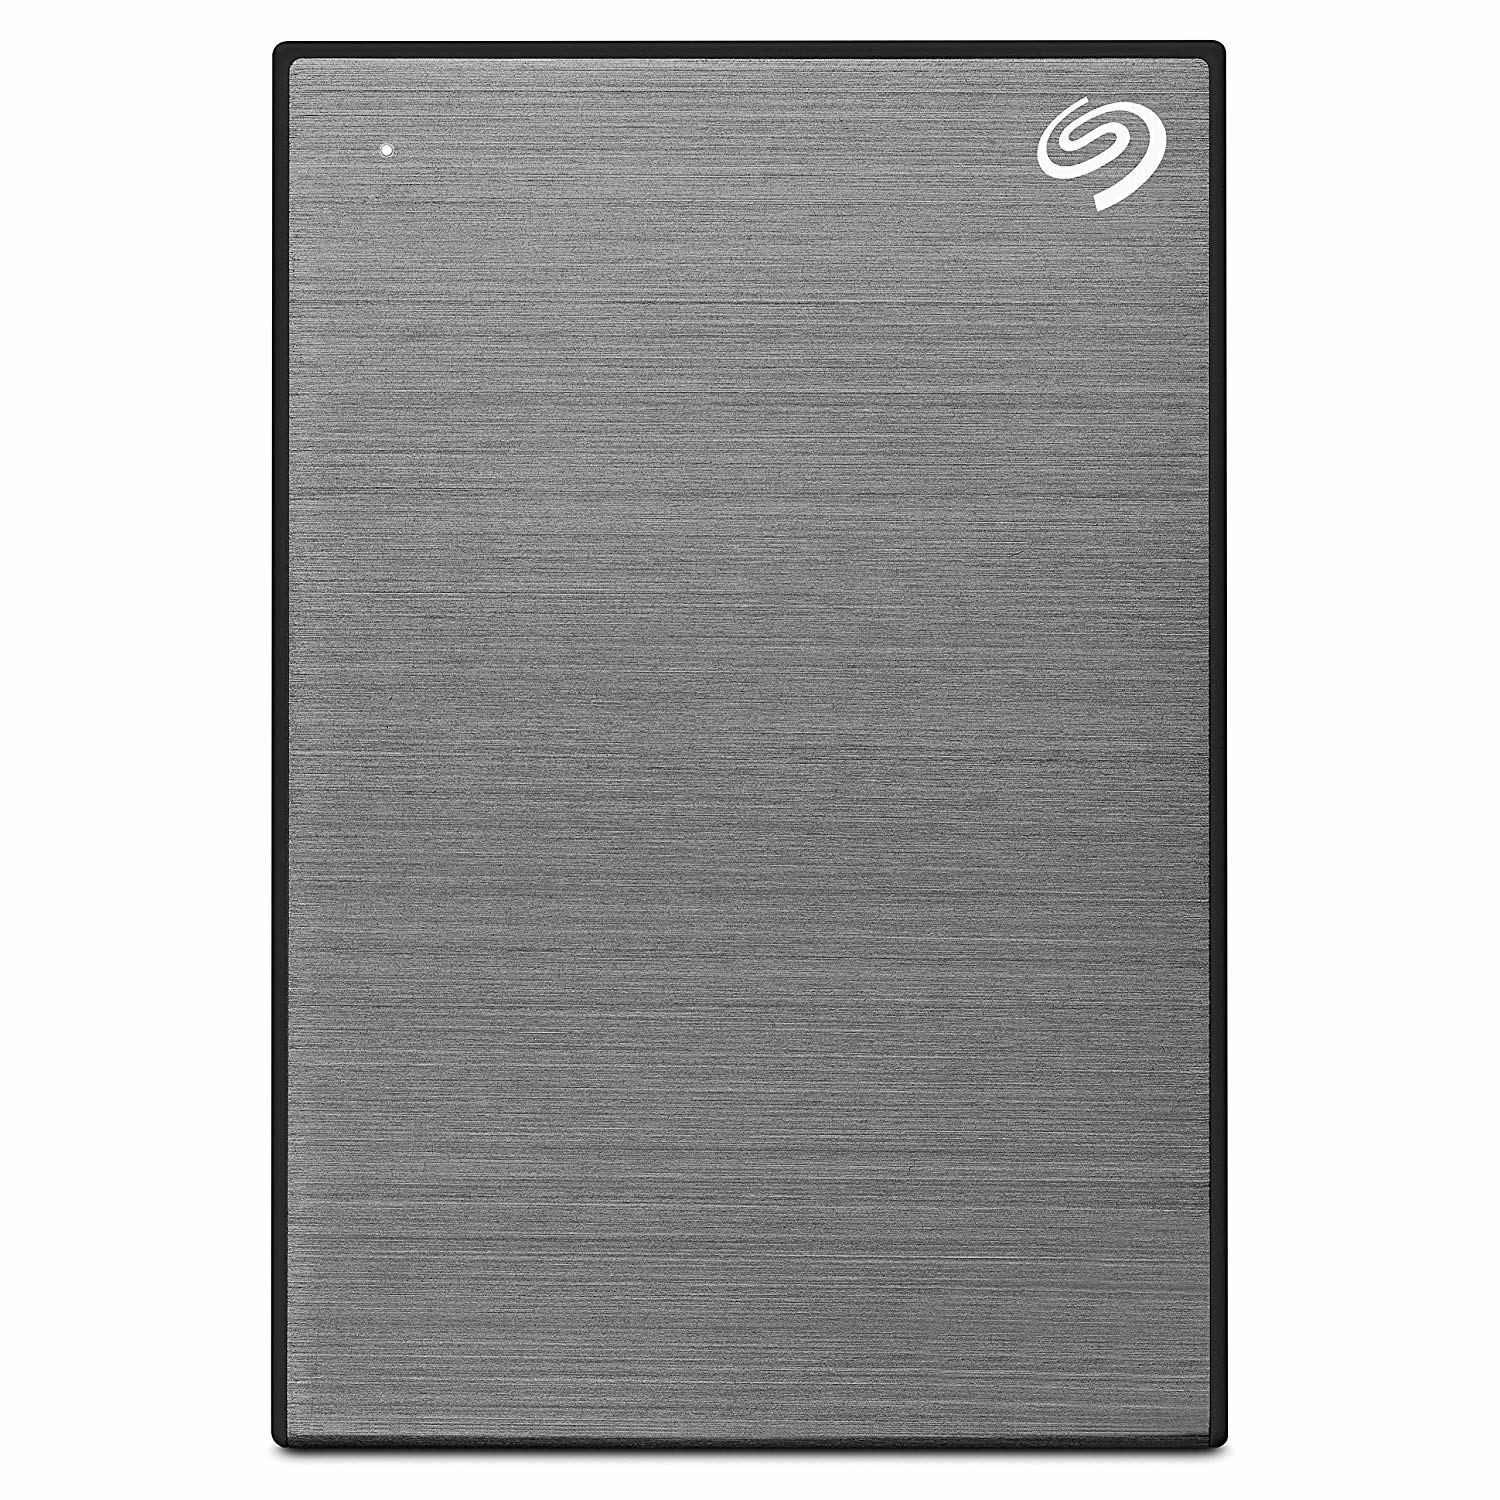 SEAGATE BACKUP PLUS SLIM EXTERNAL HARD DRIVE 1000 GB GREY